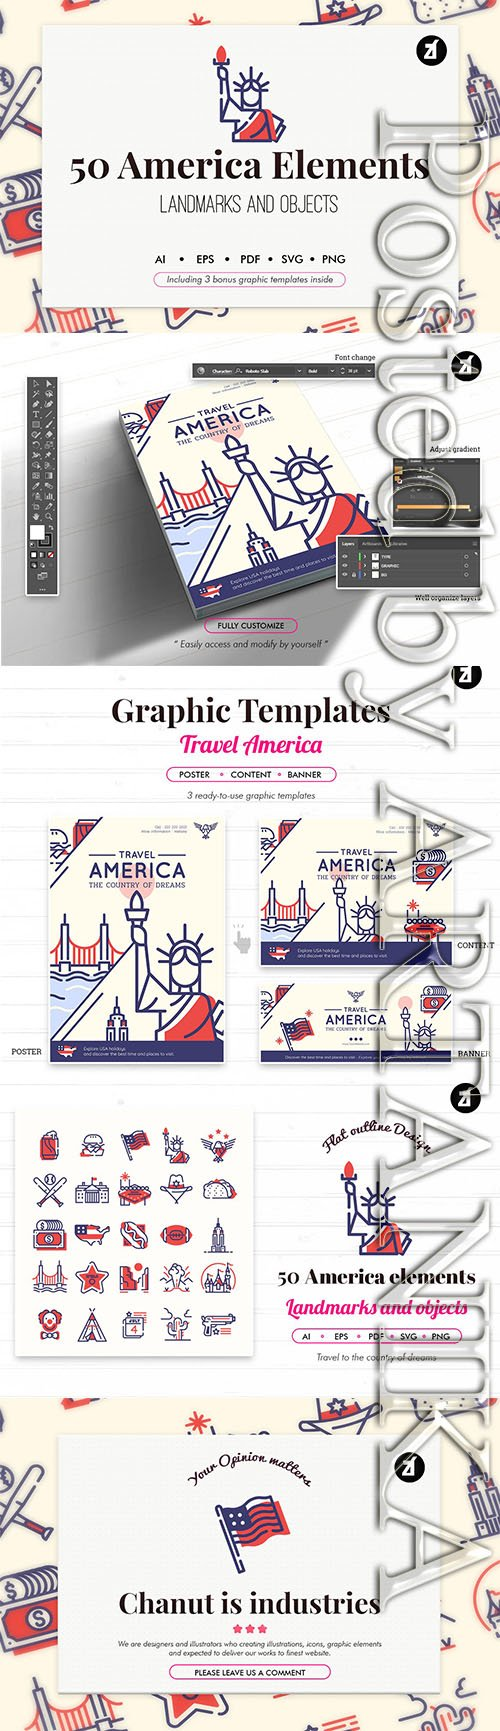 50 USA elements with bonus graphic templates